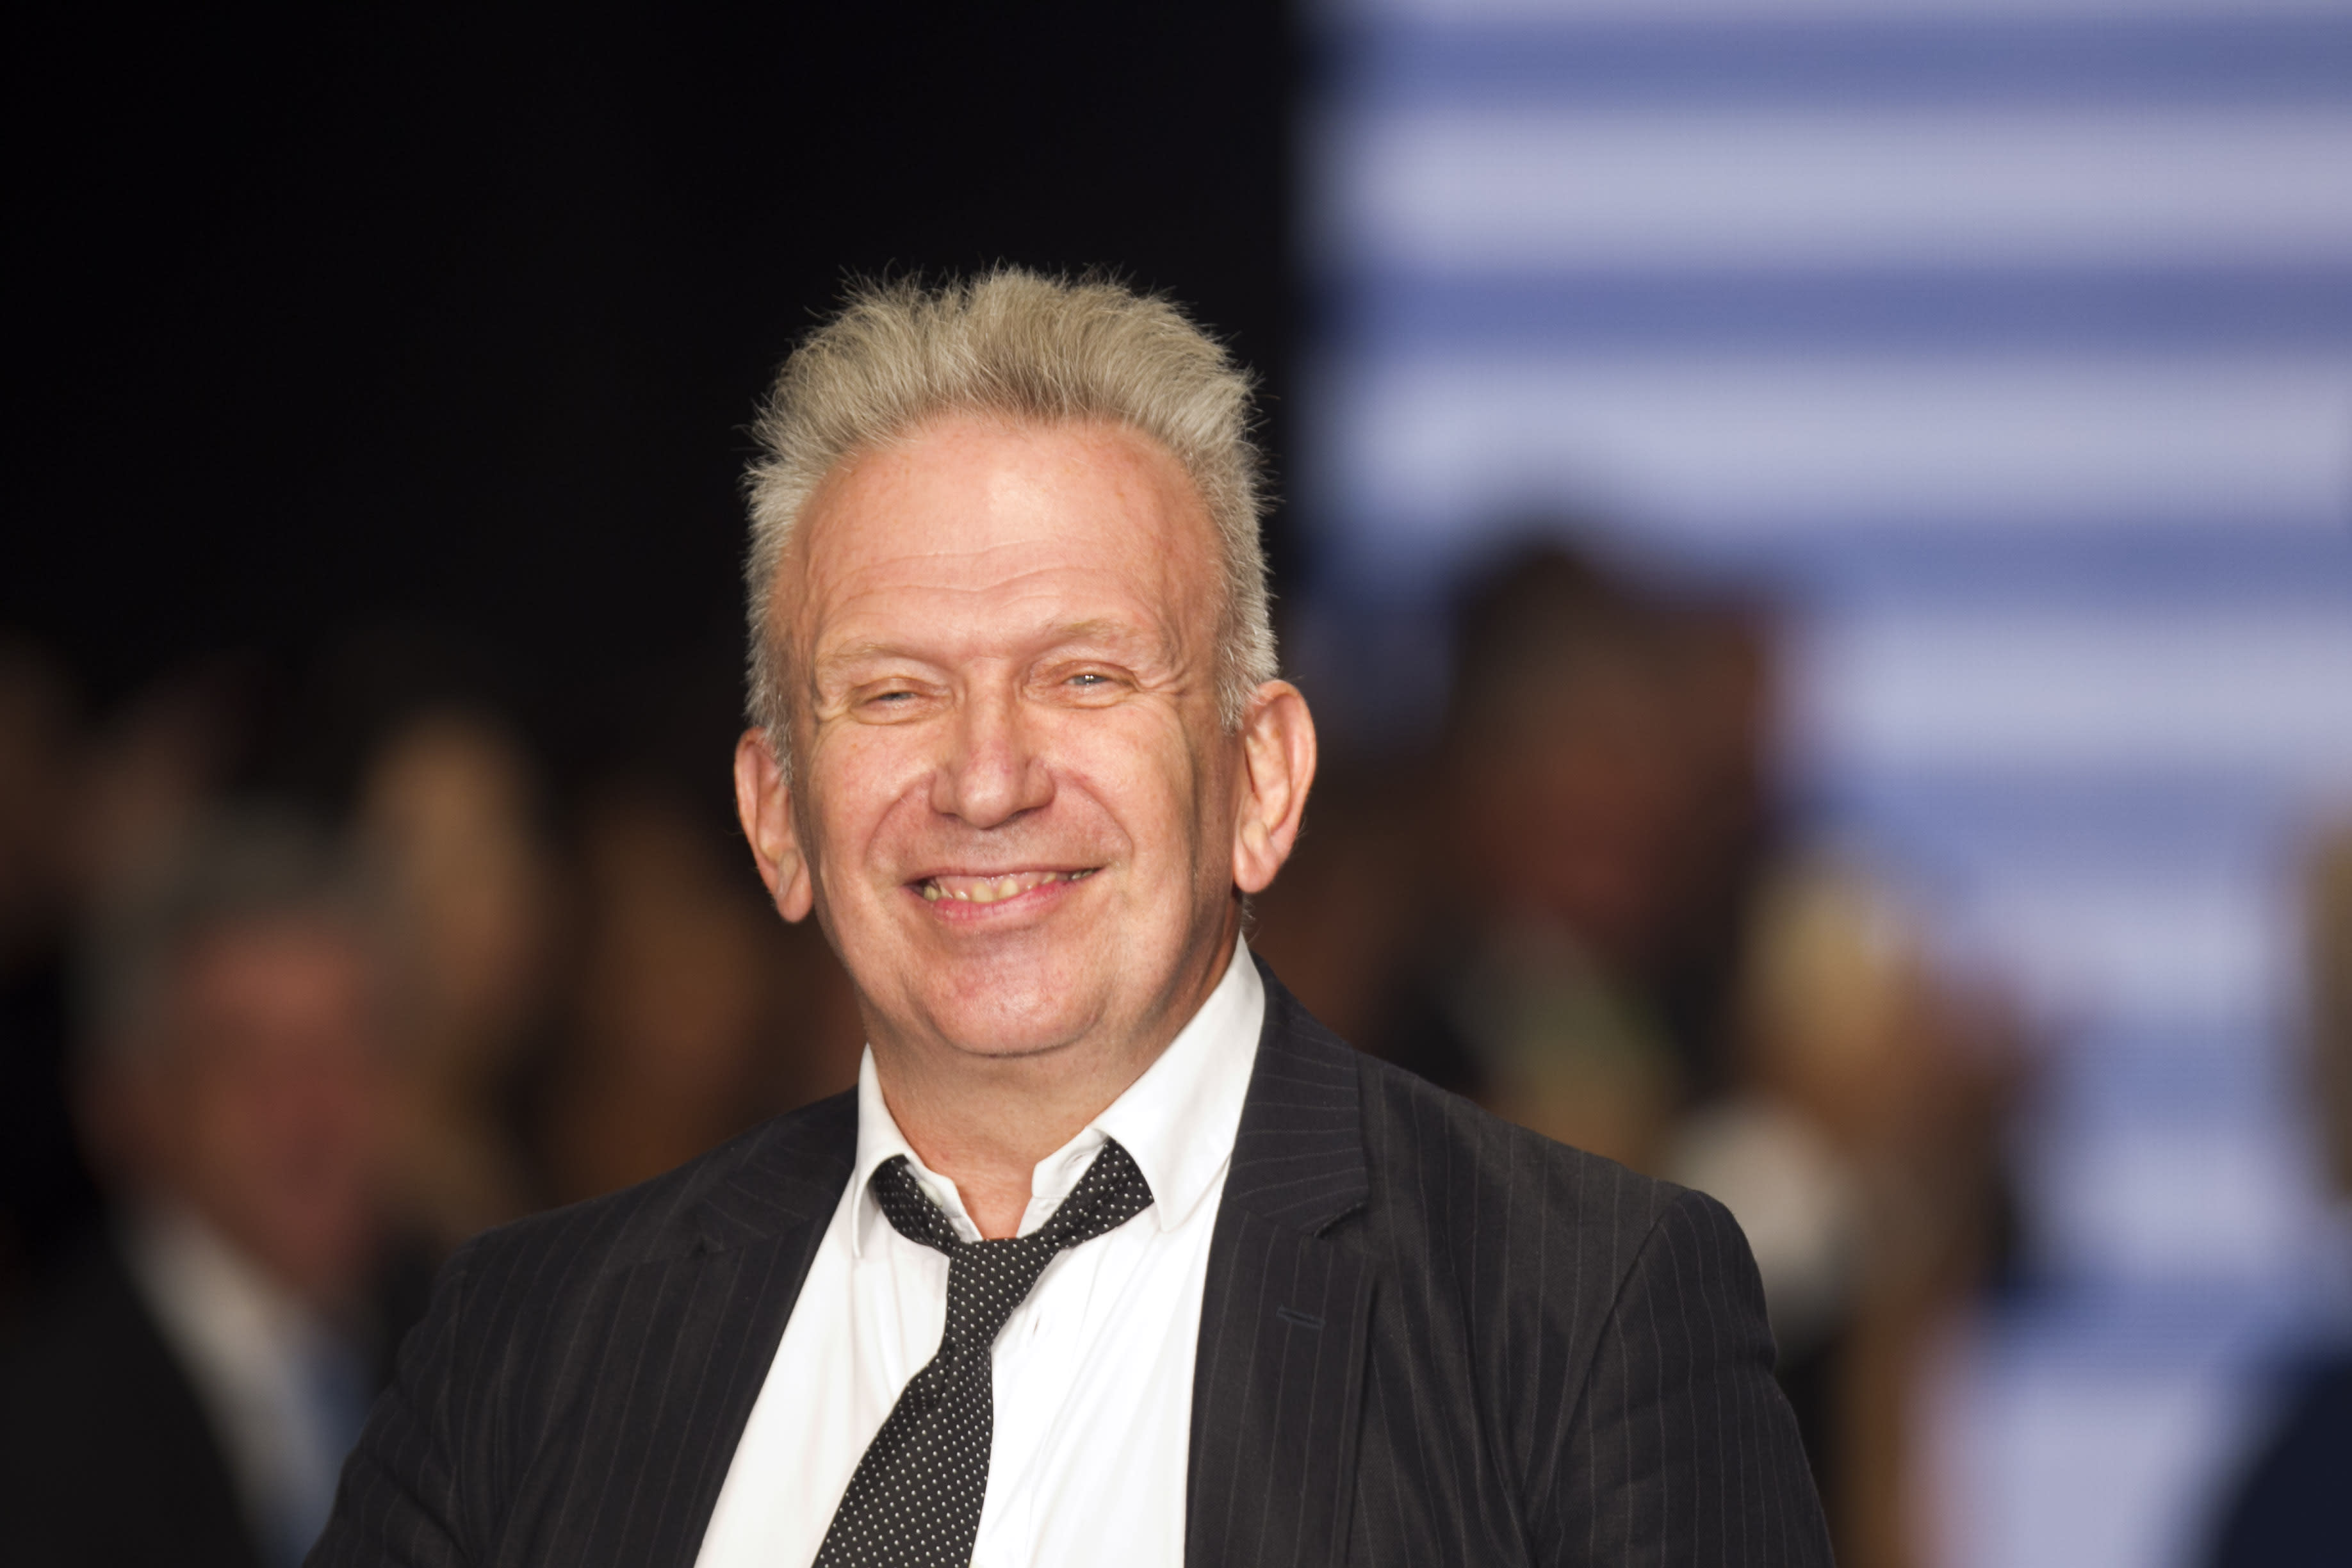 Jean Paul Gaultier has a new fashion collaboration in the pipeline